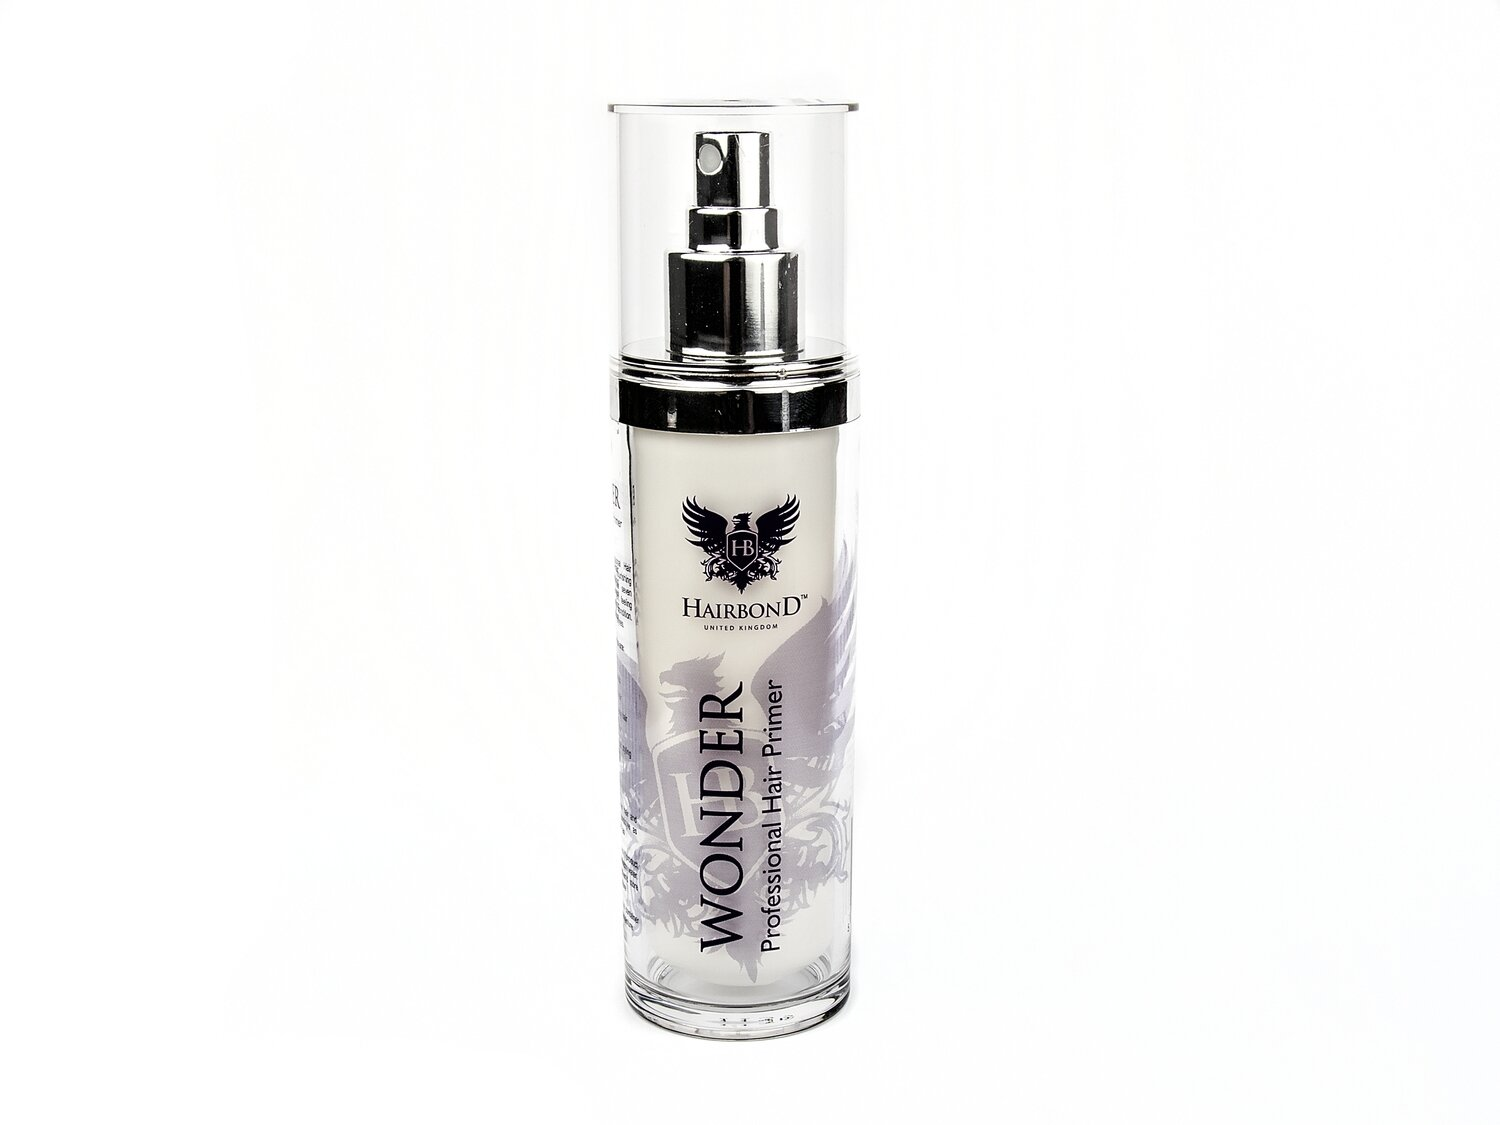 12 X Hairbond® Wonder Professional Hair Primer Spray 120 ml.